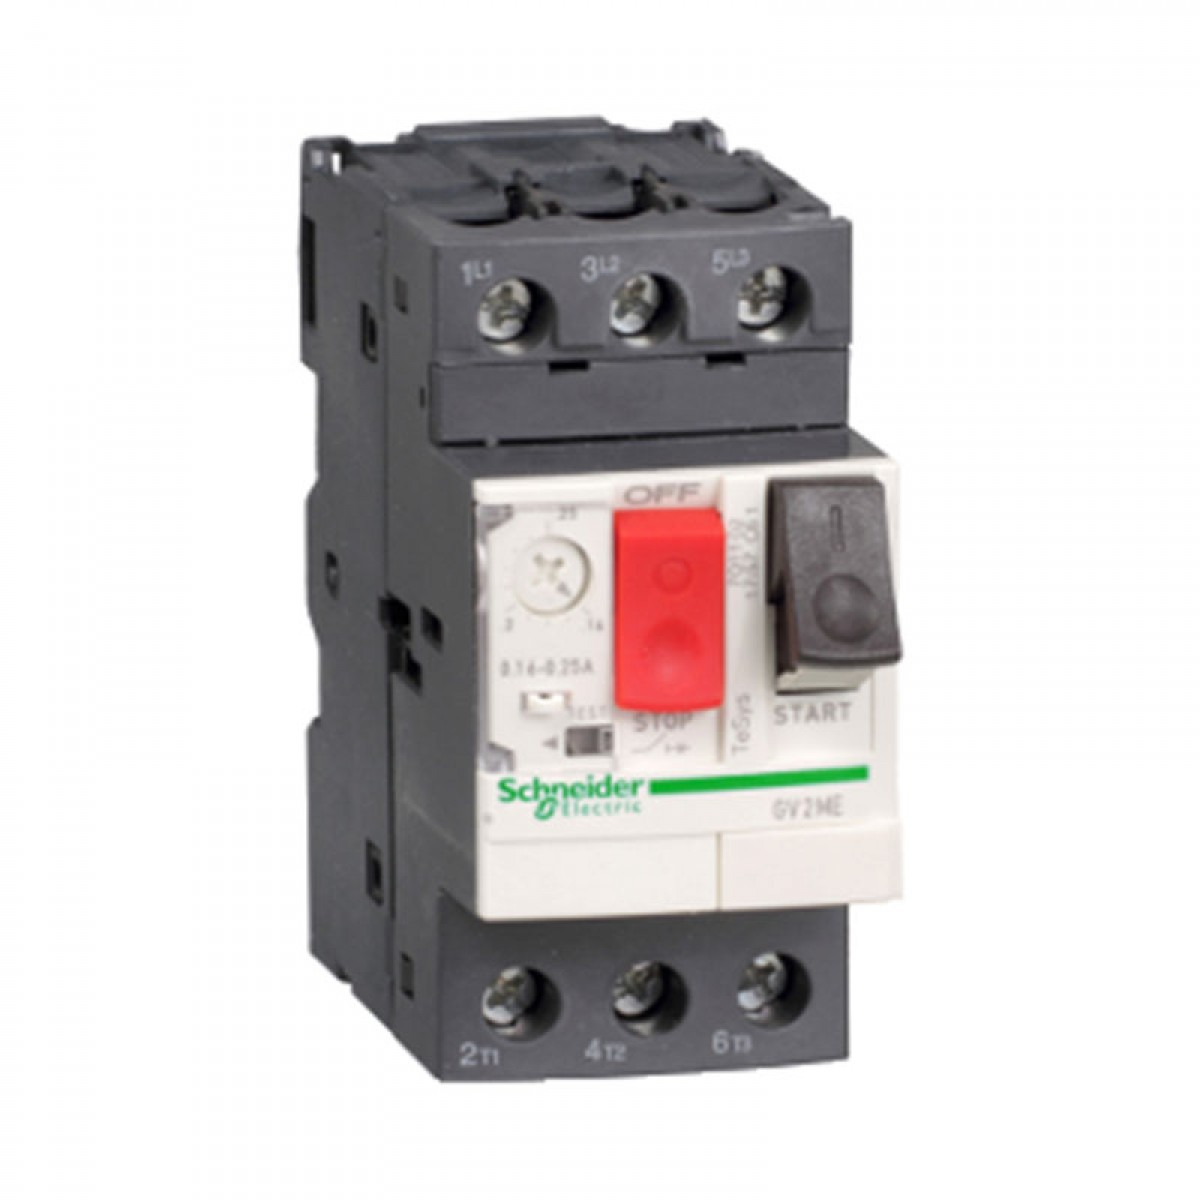 Schneider TeSys GV2 Motor Circuit Breakers And Switches GV2ME01C Range: 0.1-0.16A